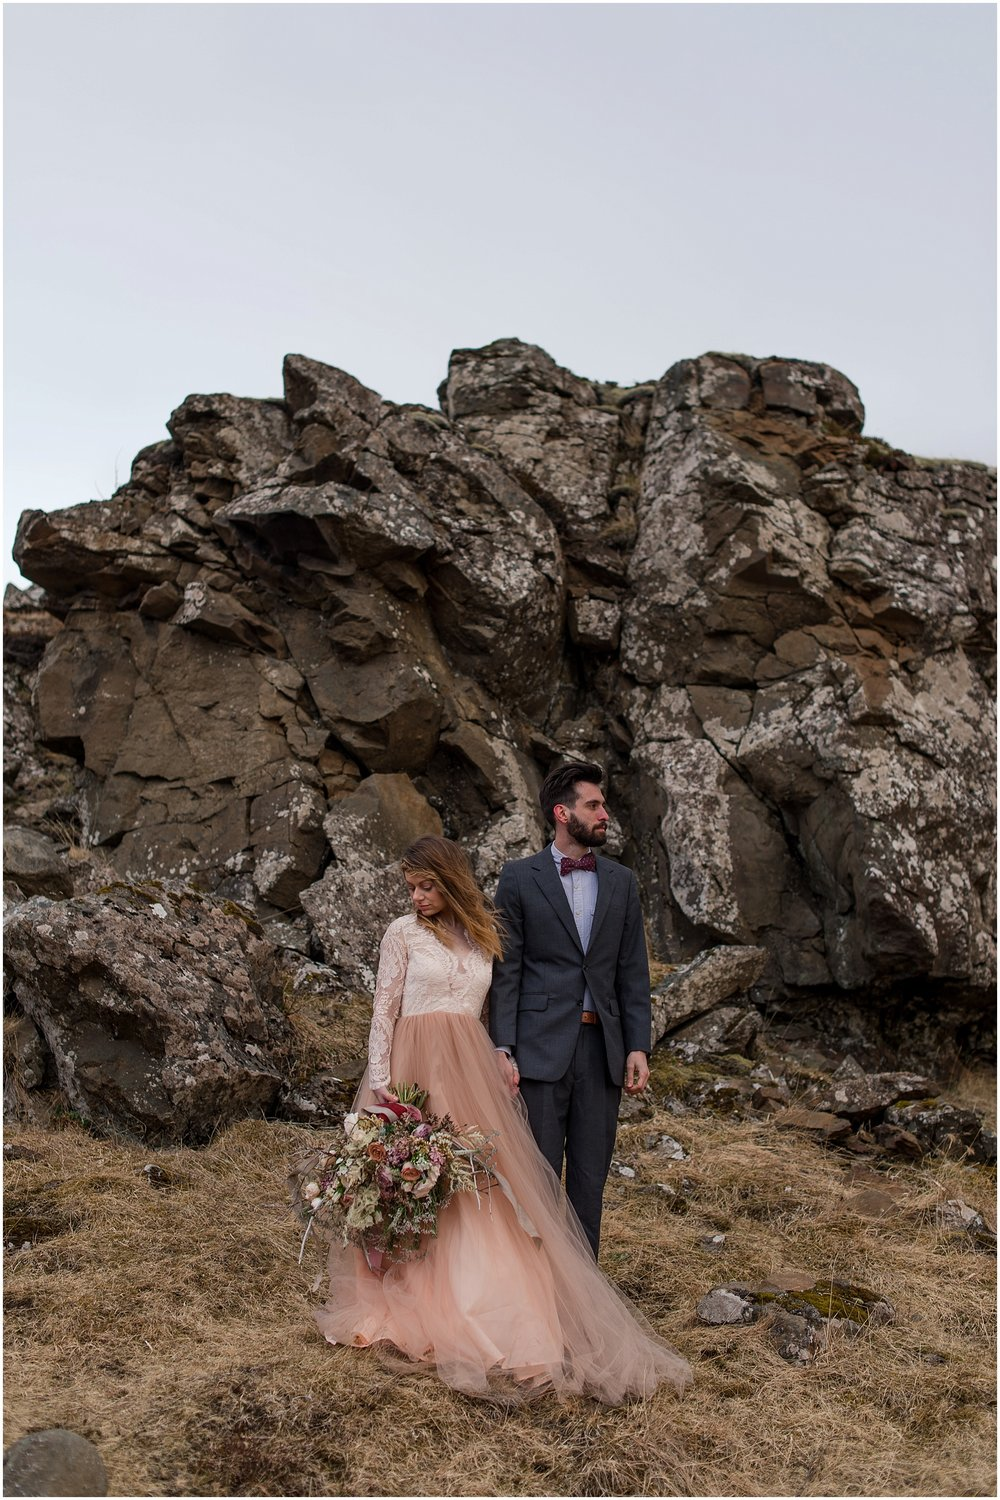 Hannah Leigh Photography Iceland Elopement_2795.jpg